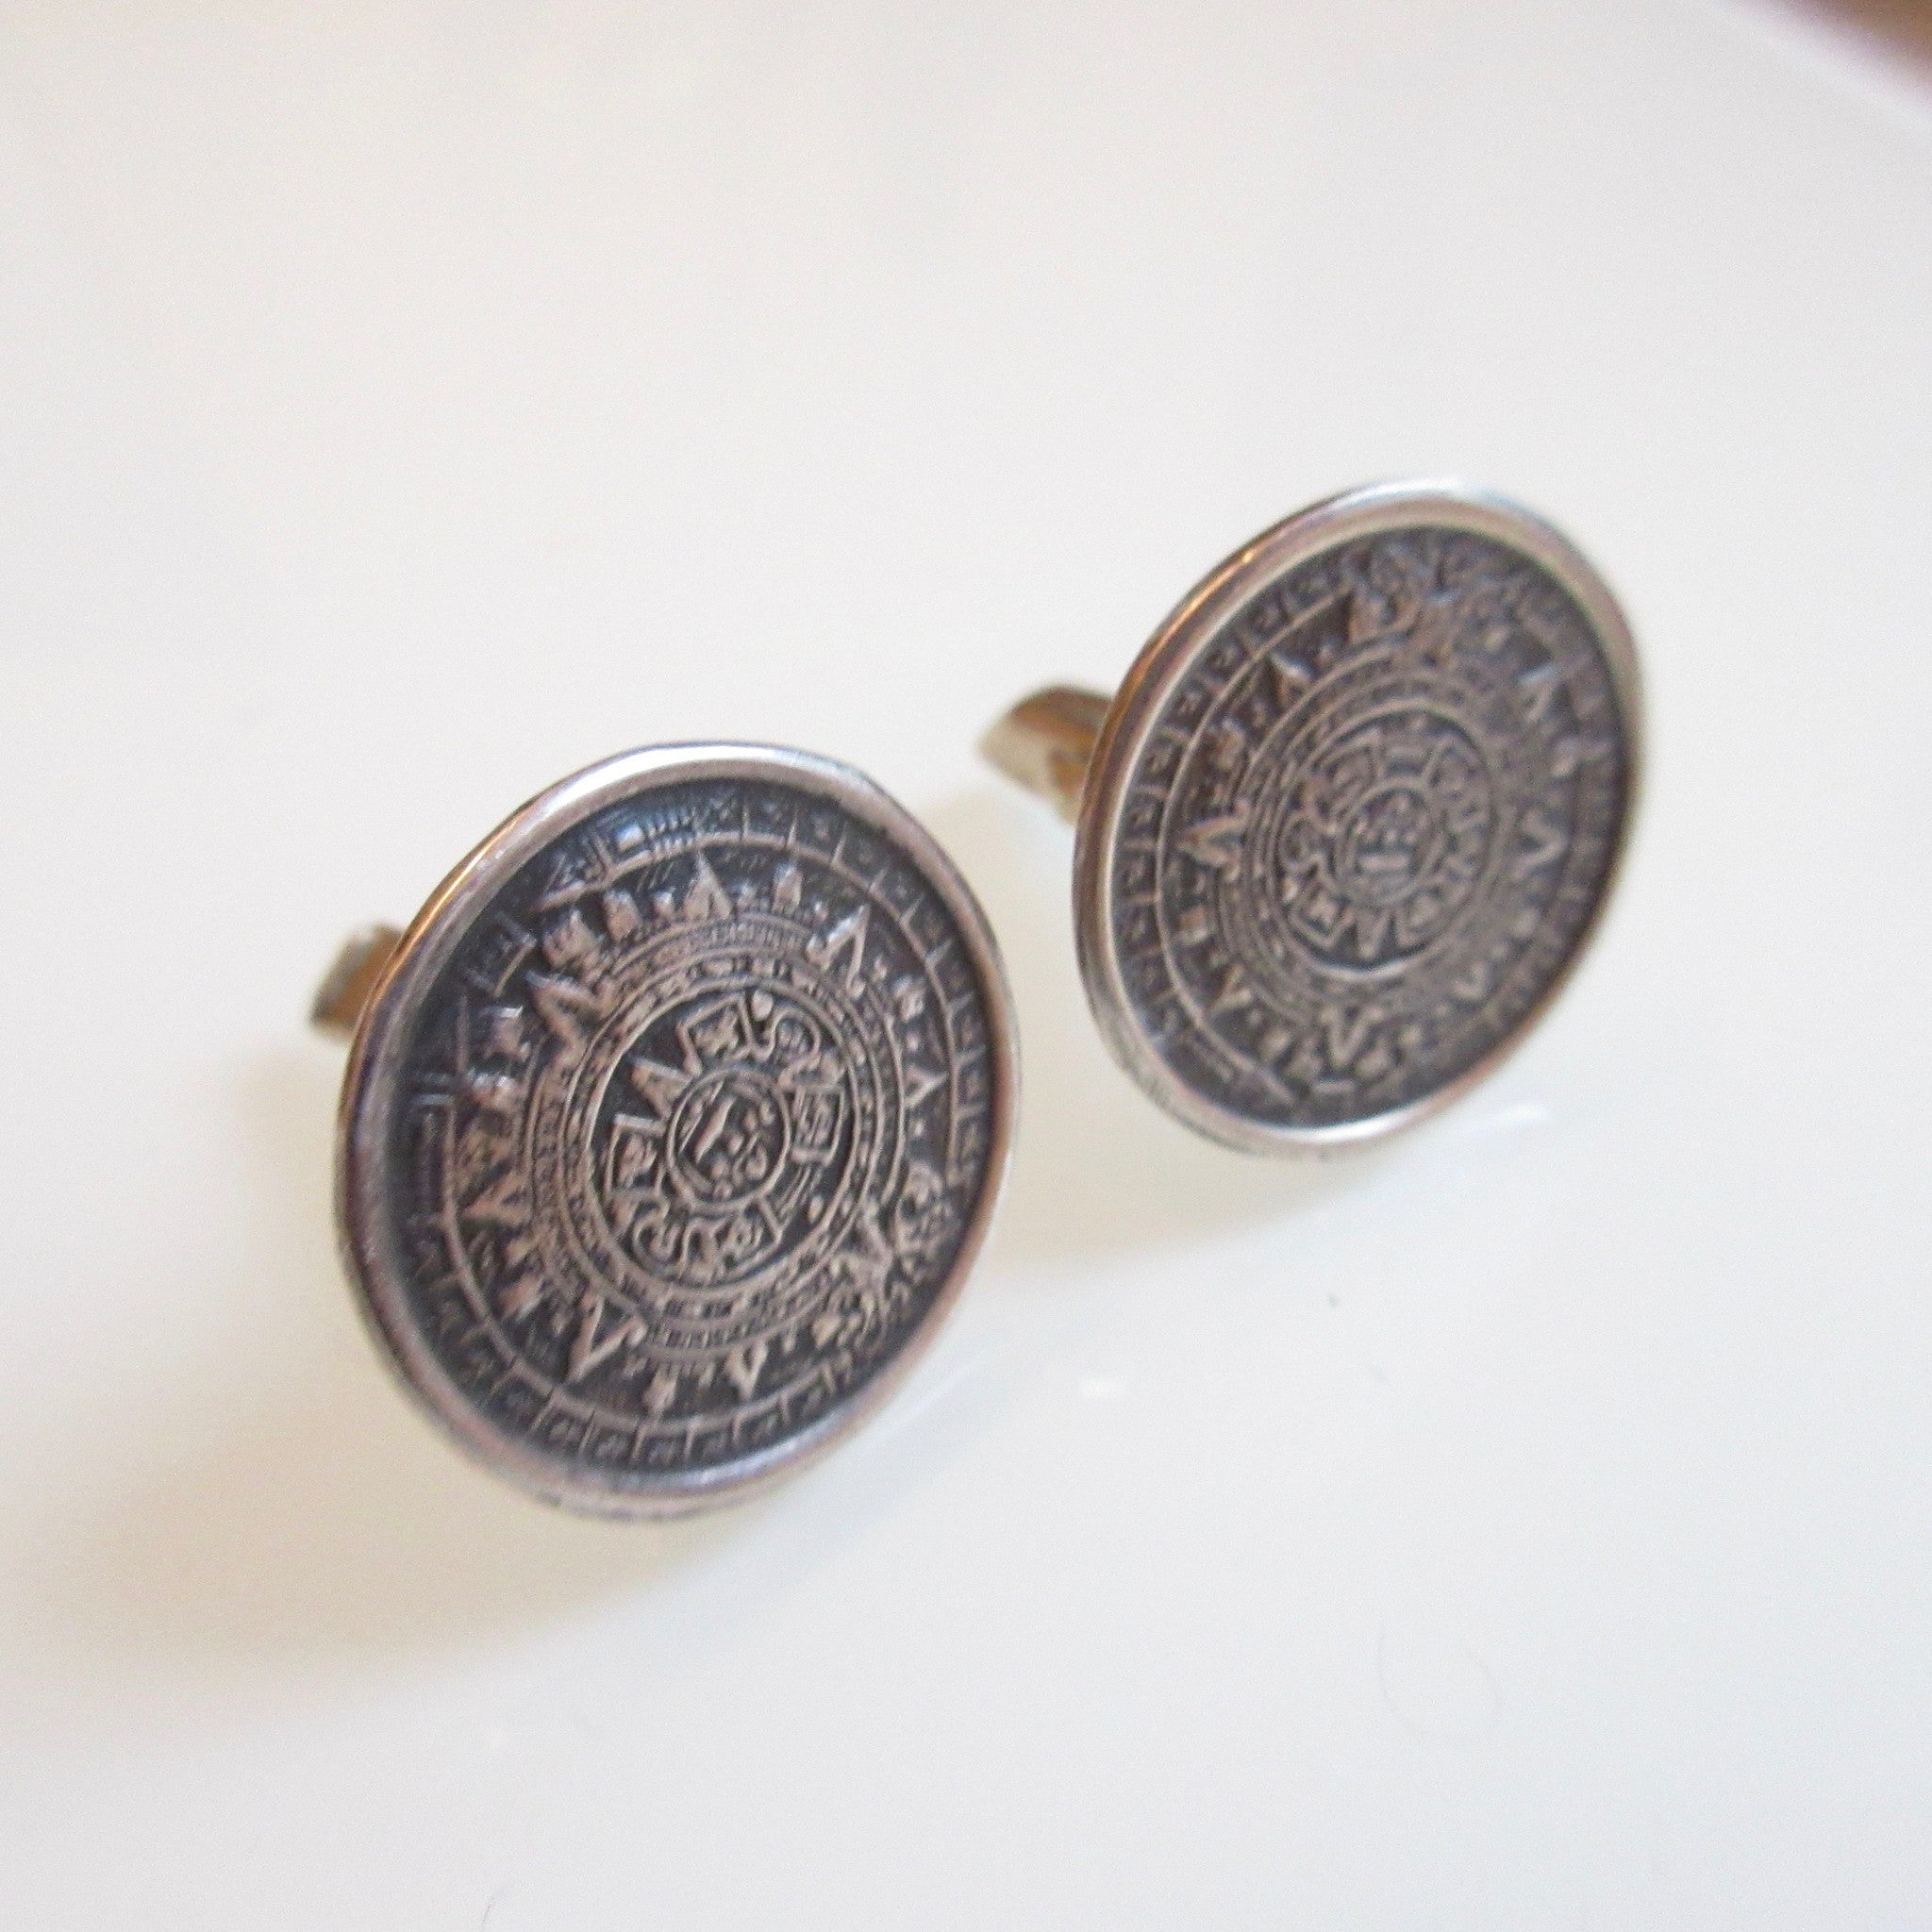 Vintage Aztec Sterling Silver Cuff Links